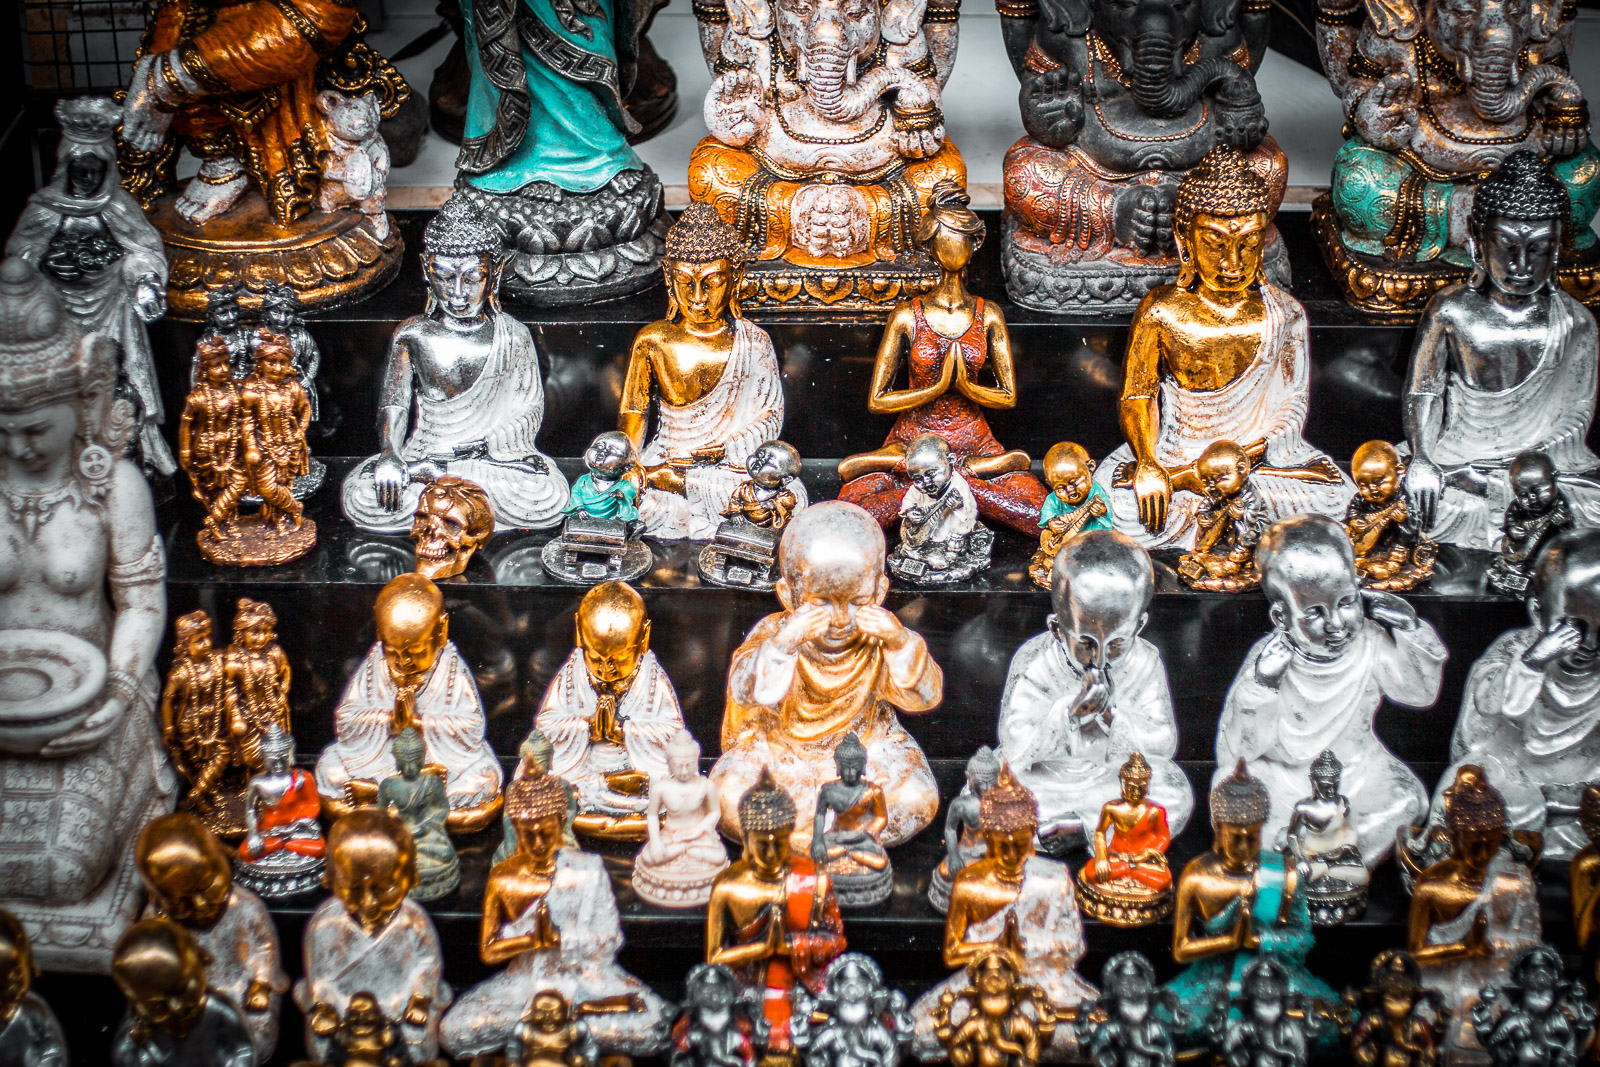 golden and bright coloured statues that are sold as souvenirs at the ubud art market